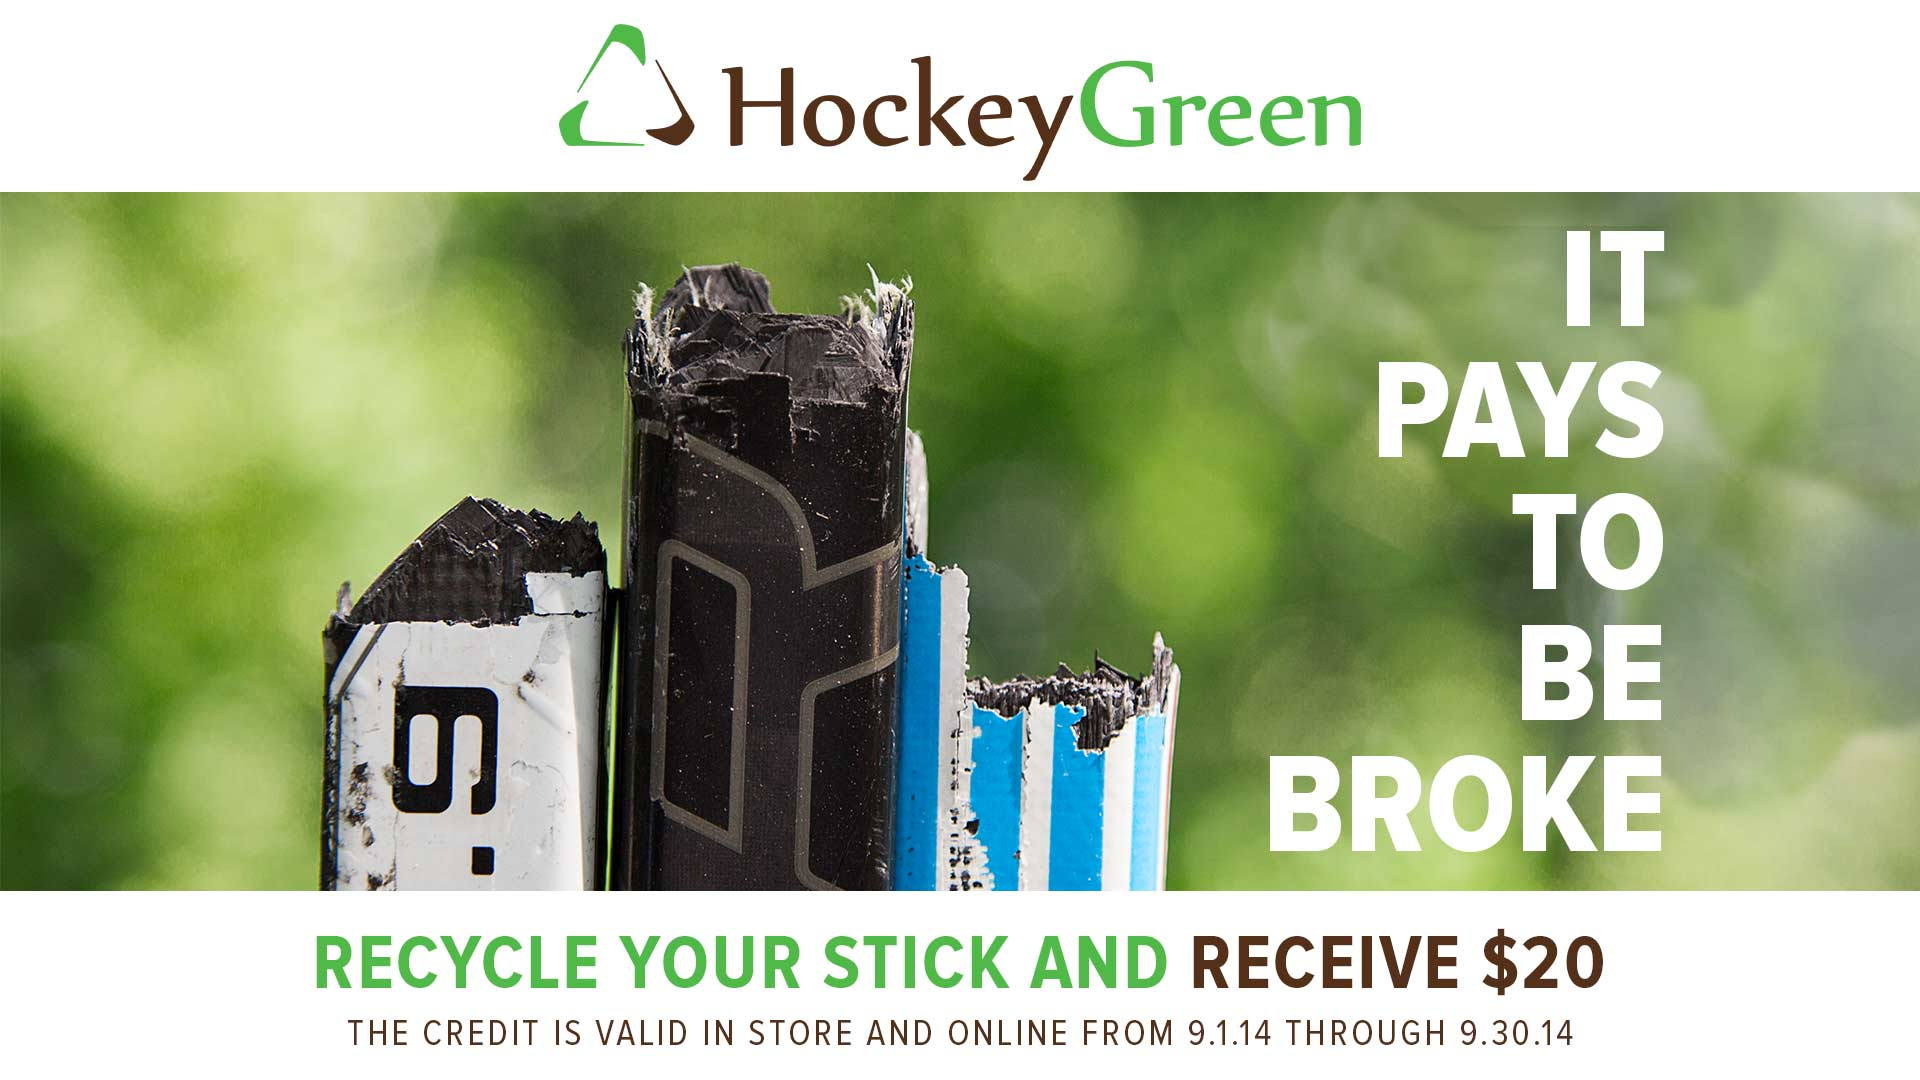 Hockey Greeen now $20 credit towards new stick until 9.30.14